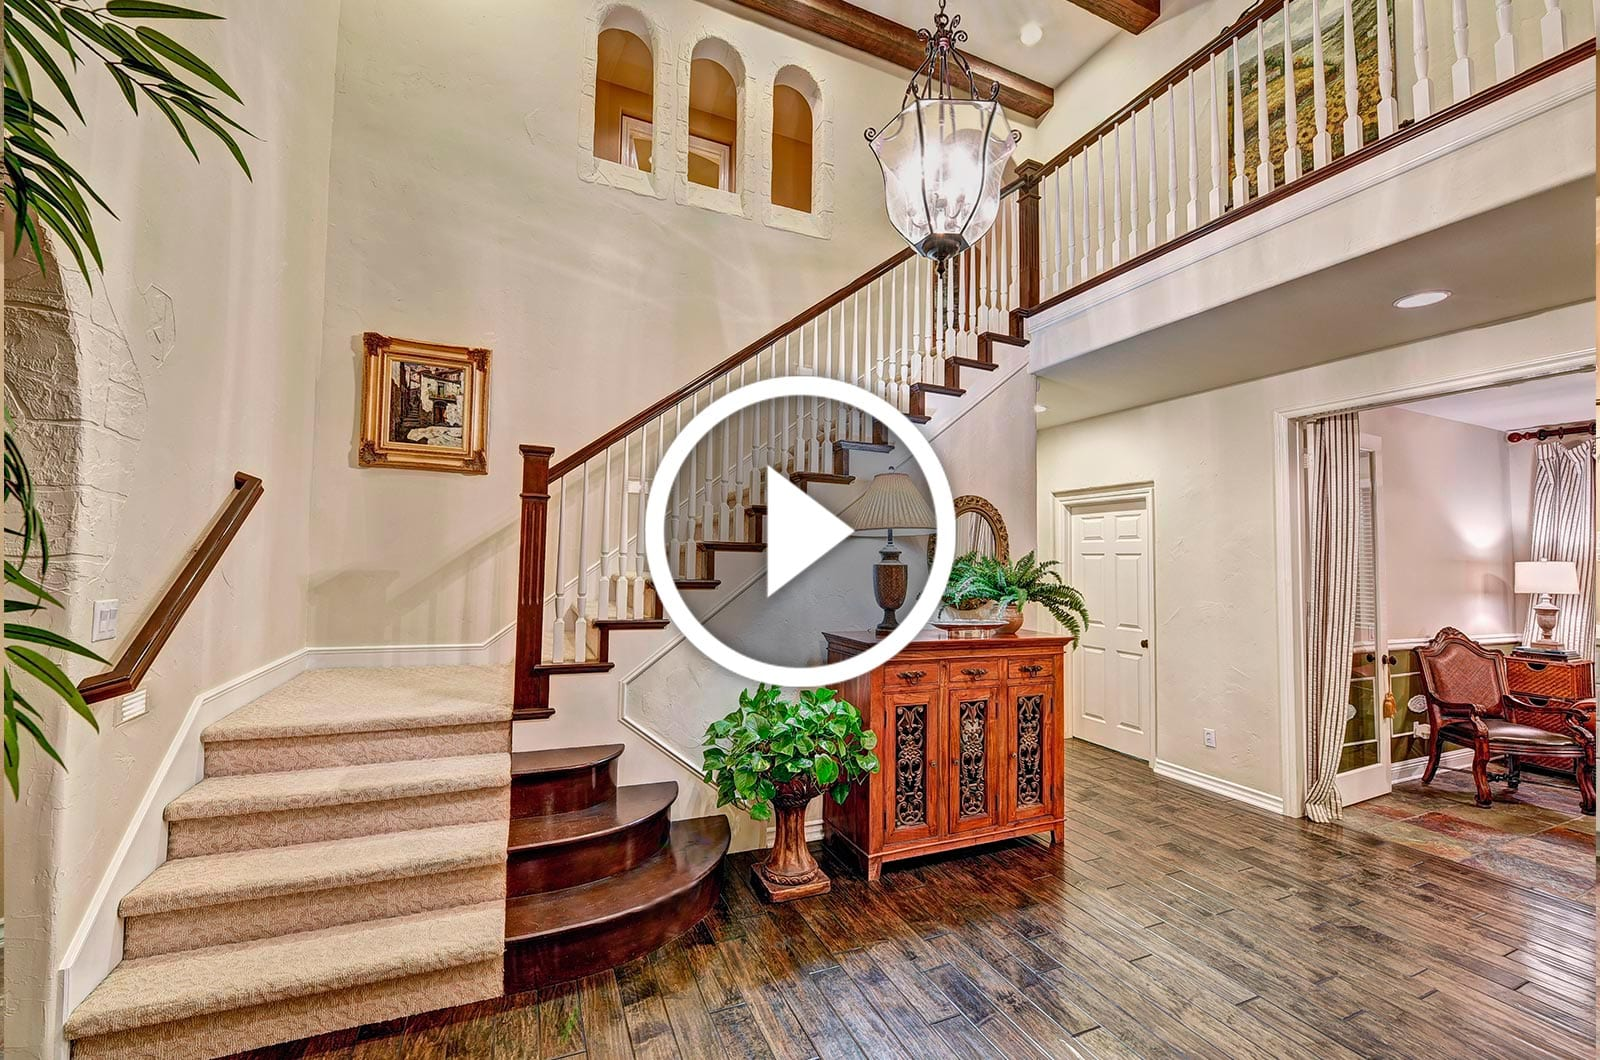 The-Boutique-Real-Estate-Group-Play-Button | Real Estate Photography Orange County | Virtual Tours OC | Virtual Tour Photographer Orange County | Virtual Tour Services Orange County